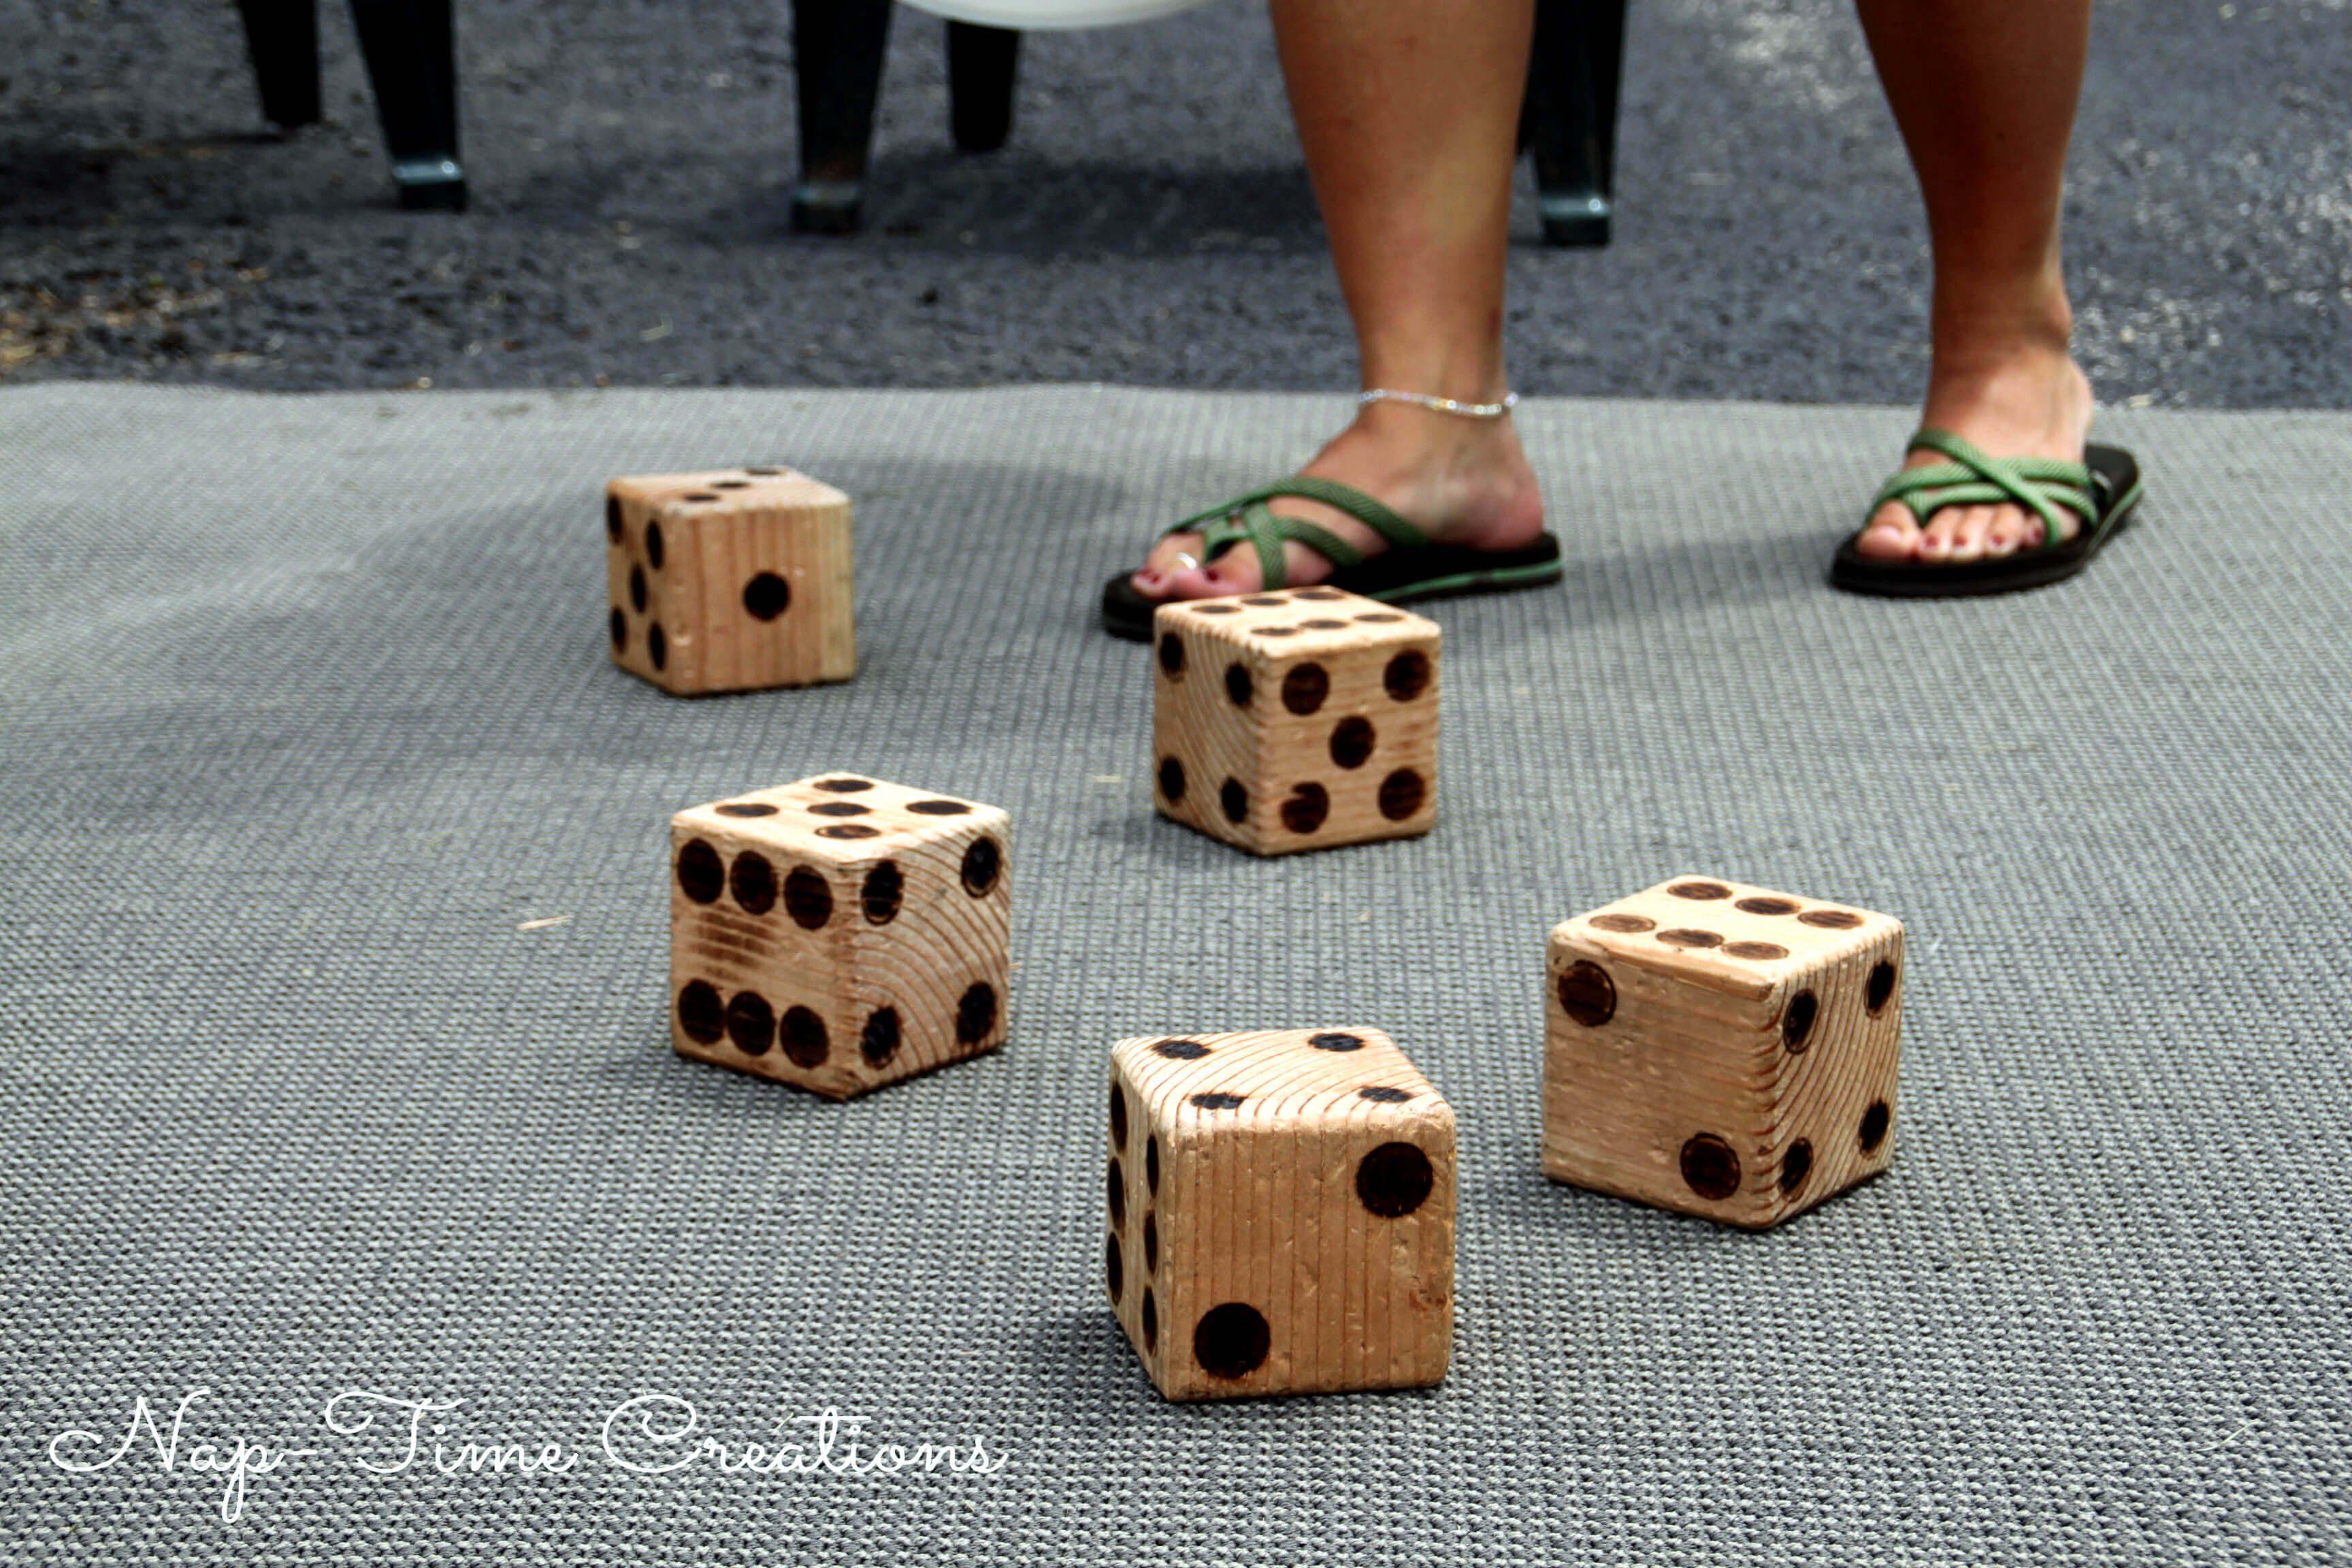 Discussion on this topic: How to Play Yard Yahtzee, how-to-play-yard-yahtzee/